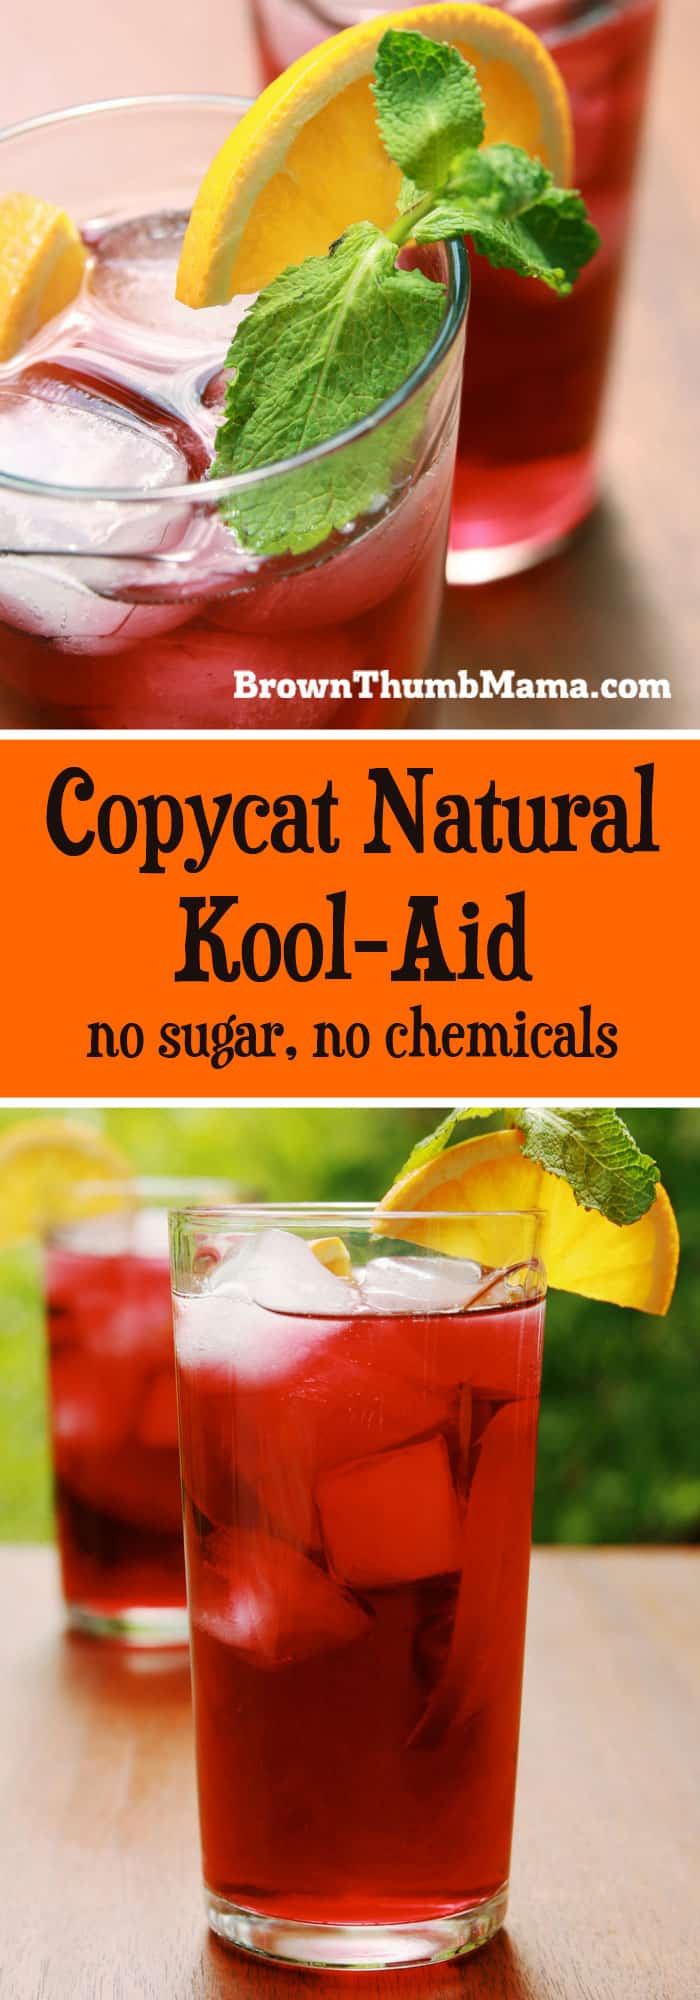 My kids love this copycat natural Kool-Aid! It's easy to make in several